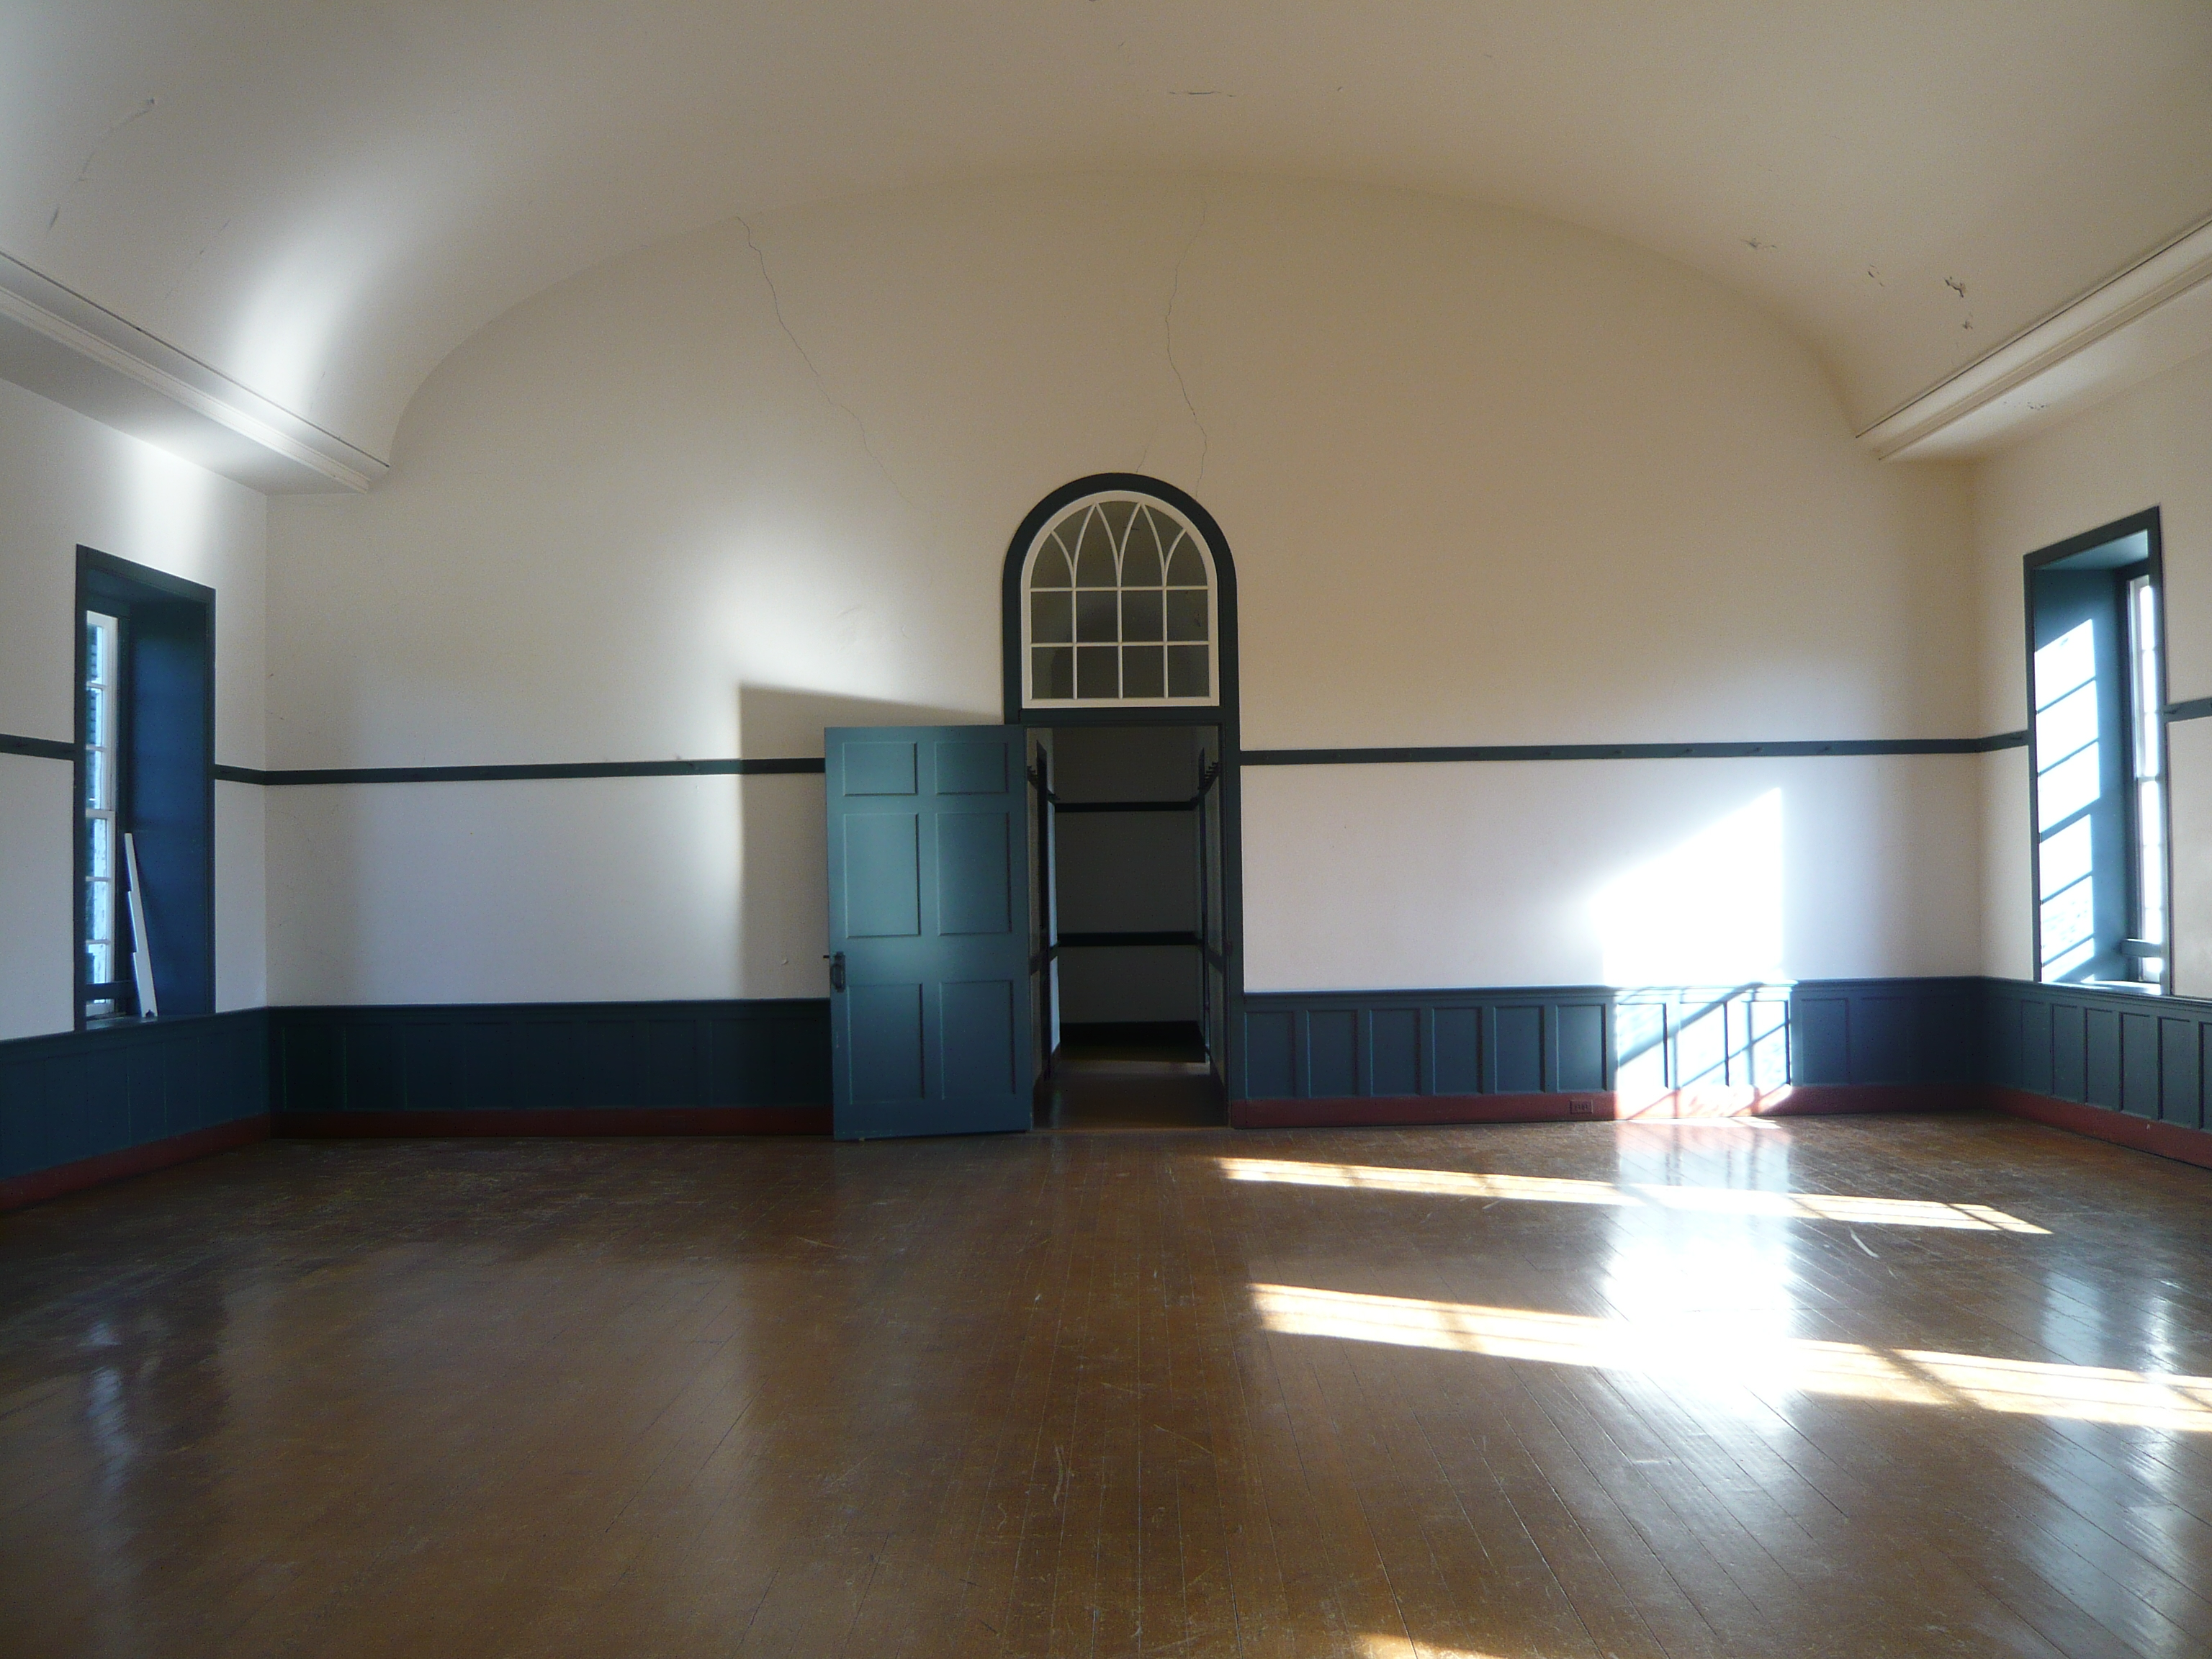 FileCenter Family Meeting Room Shaker Village at Pleasant